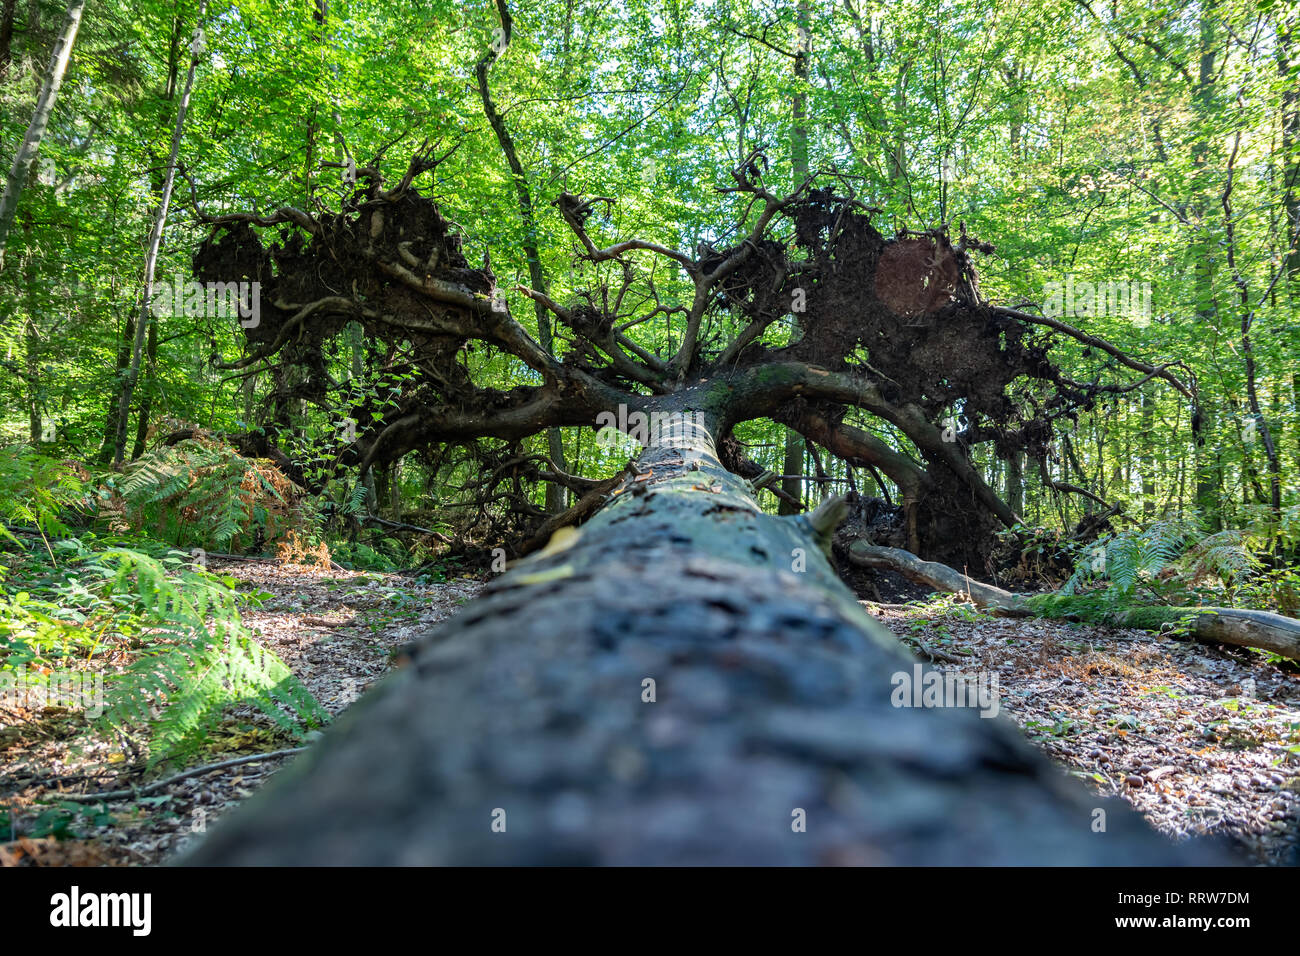 Nature and landscape concept: Closeup from the trunk of a tree, uprooted with roots. - Stock Image